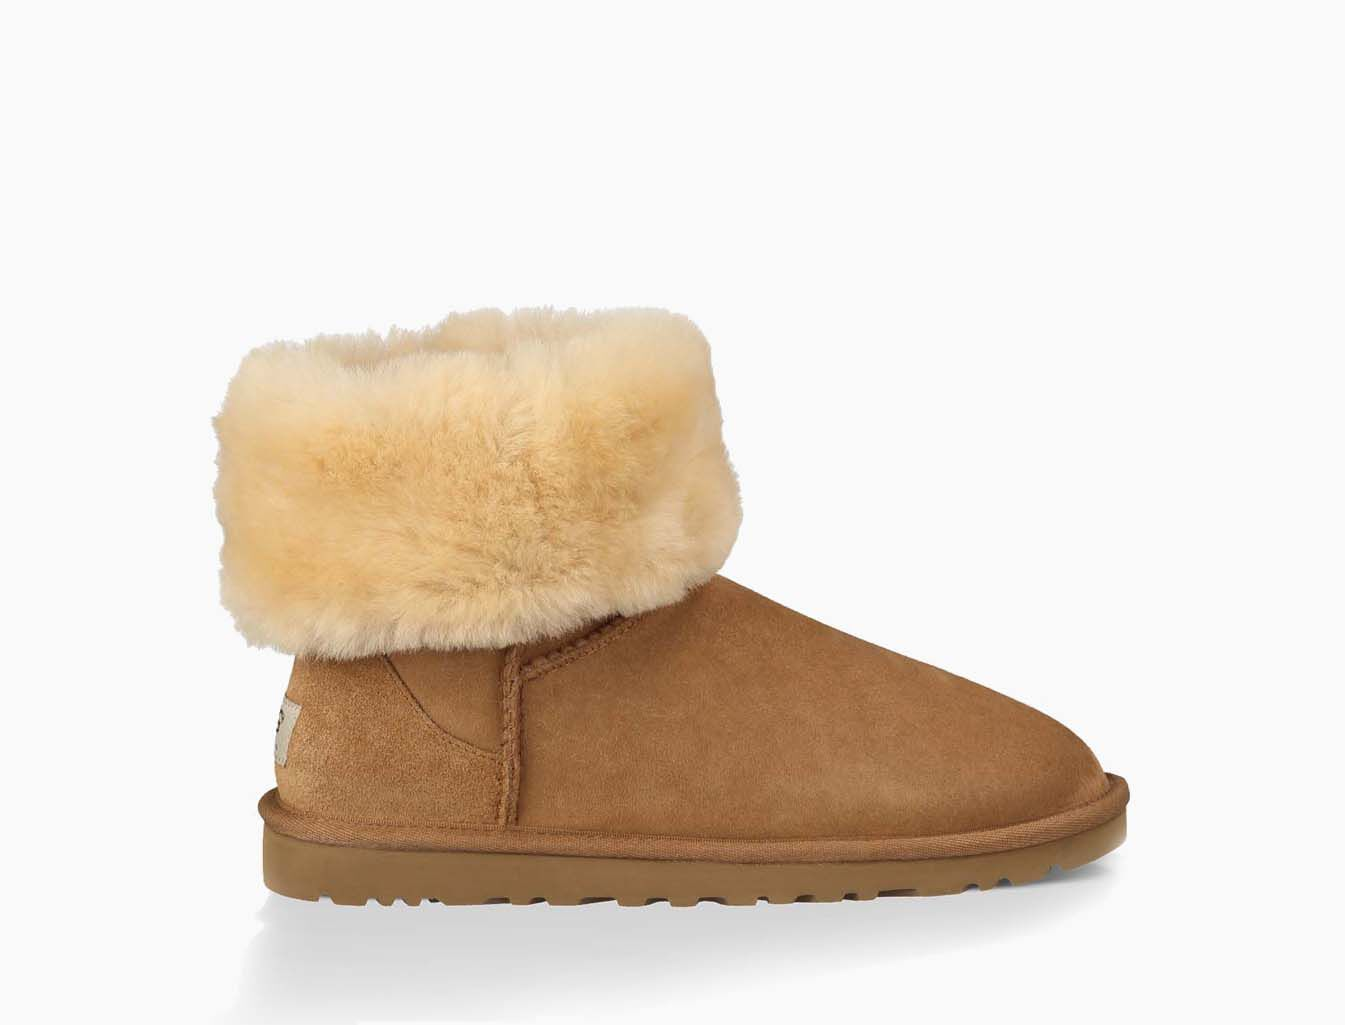 sunburst uggs for sale